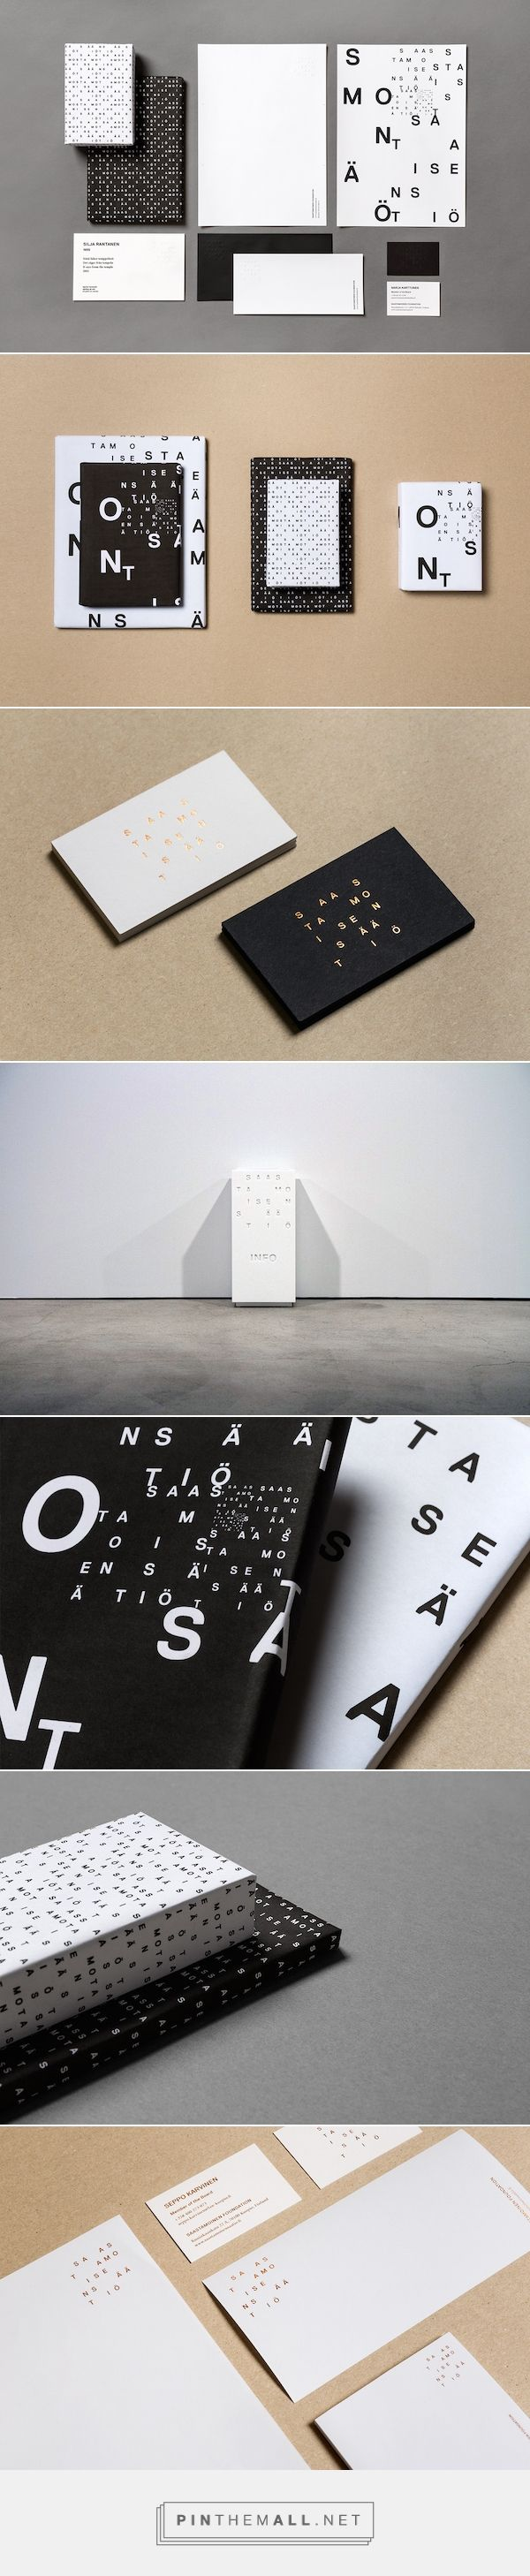 """Helsinki-based designer Tony Eräpuro and design consultancy Kuudes Kerros has teamed up to create a stylish and sophisticated branding for the Saastamoinen Foundation Art Collection, which is """"one of the most significant private collections in Finland"""".  Read more: http://designtaxi.com/news/379132/A-Sophisticated-Typographic-Branding-Identity-For-A-Scandinavian-Art-Museum/#ixzz3k4zHLYPQ"""